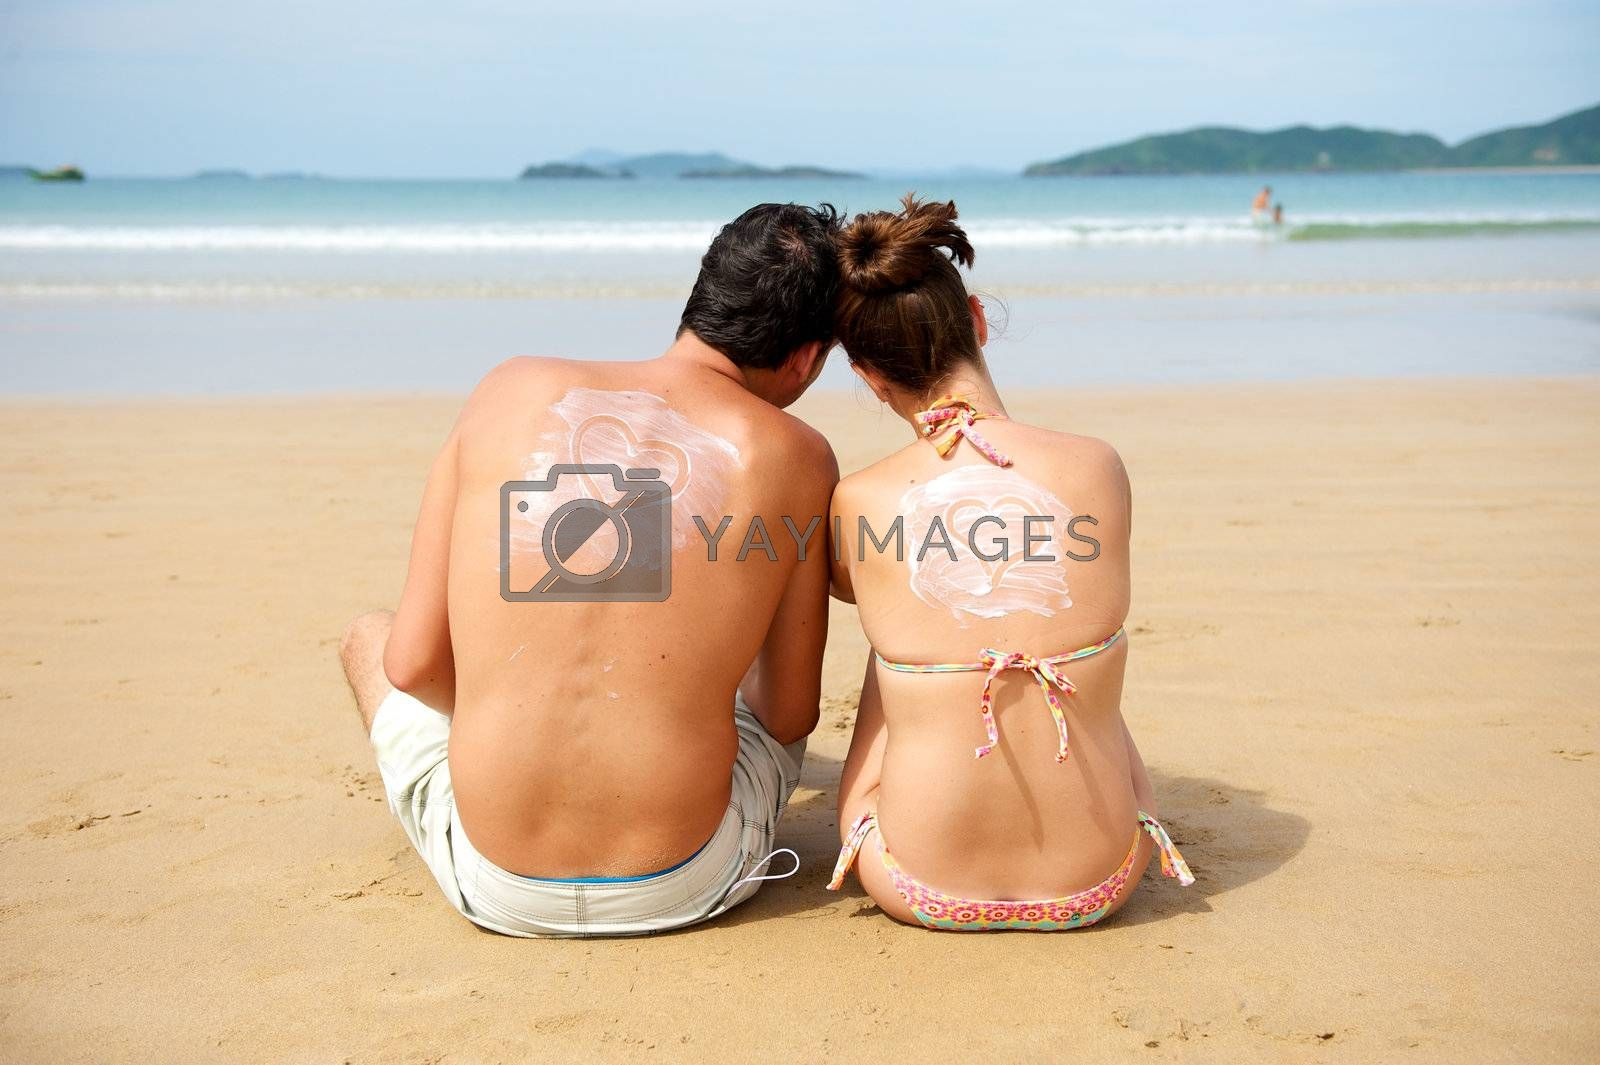 Young couple enjoying the beach with an heart draw on their backs